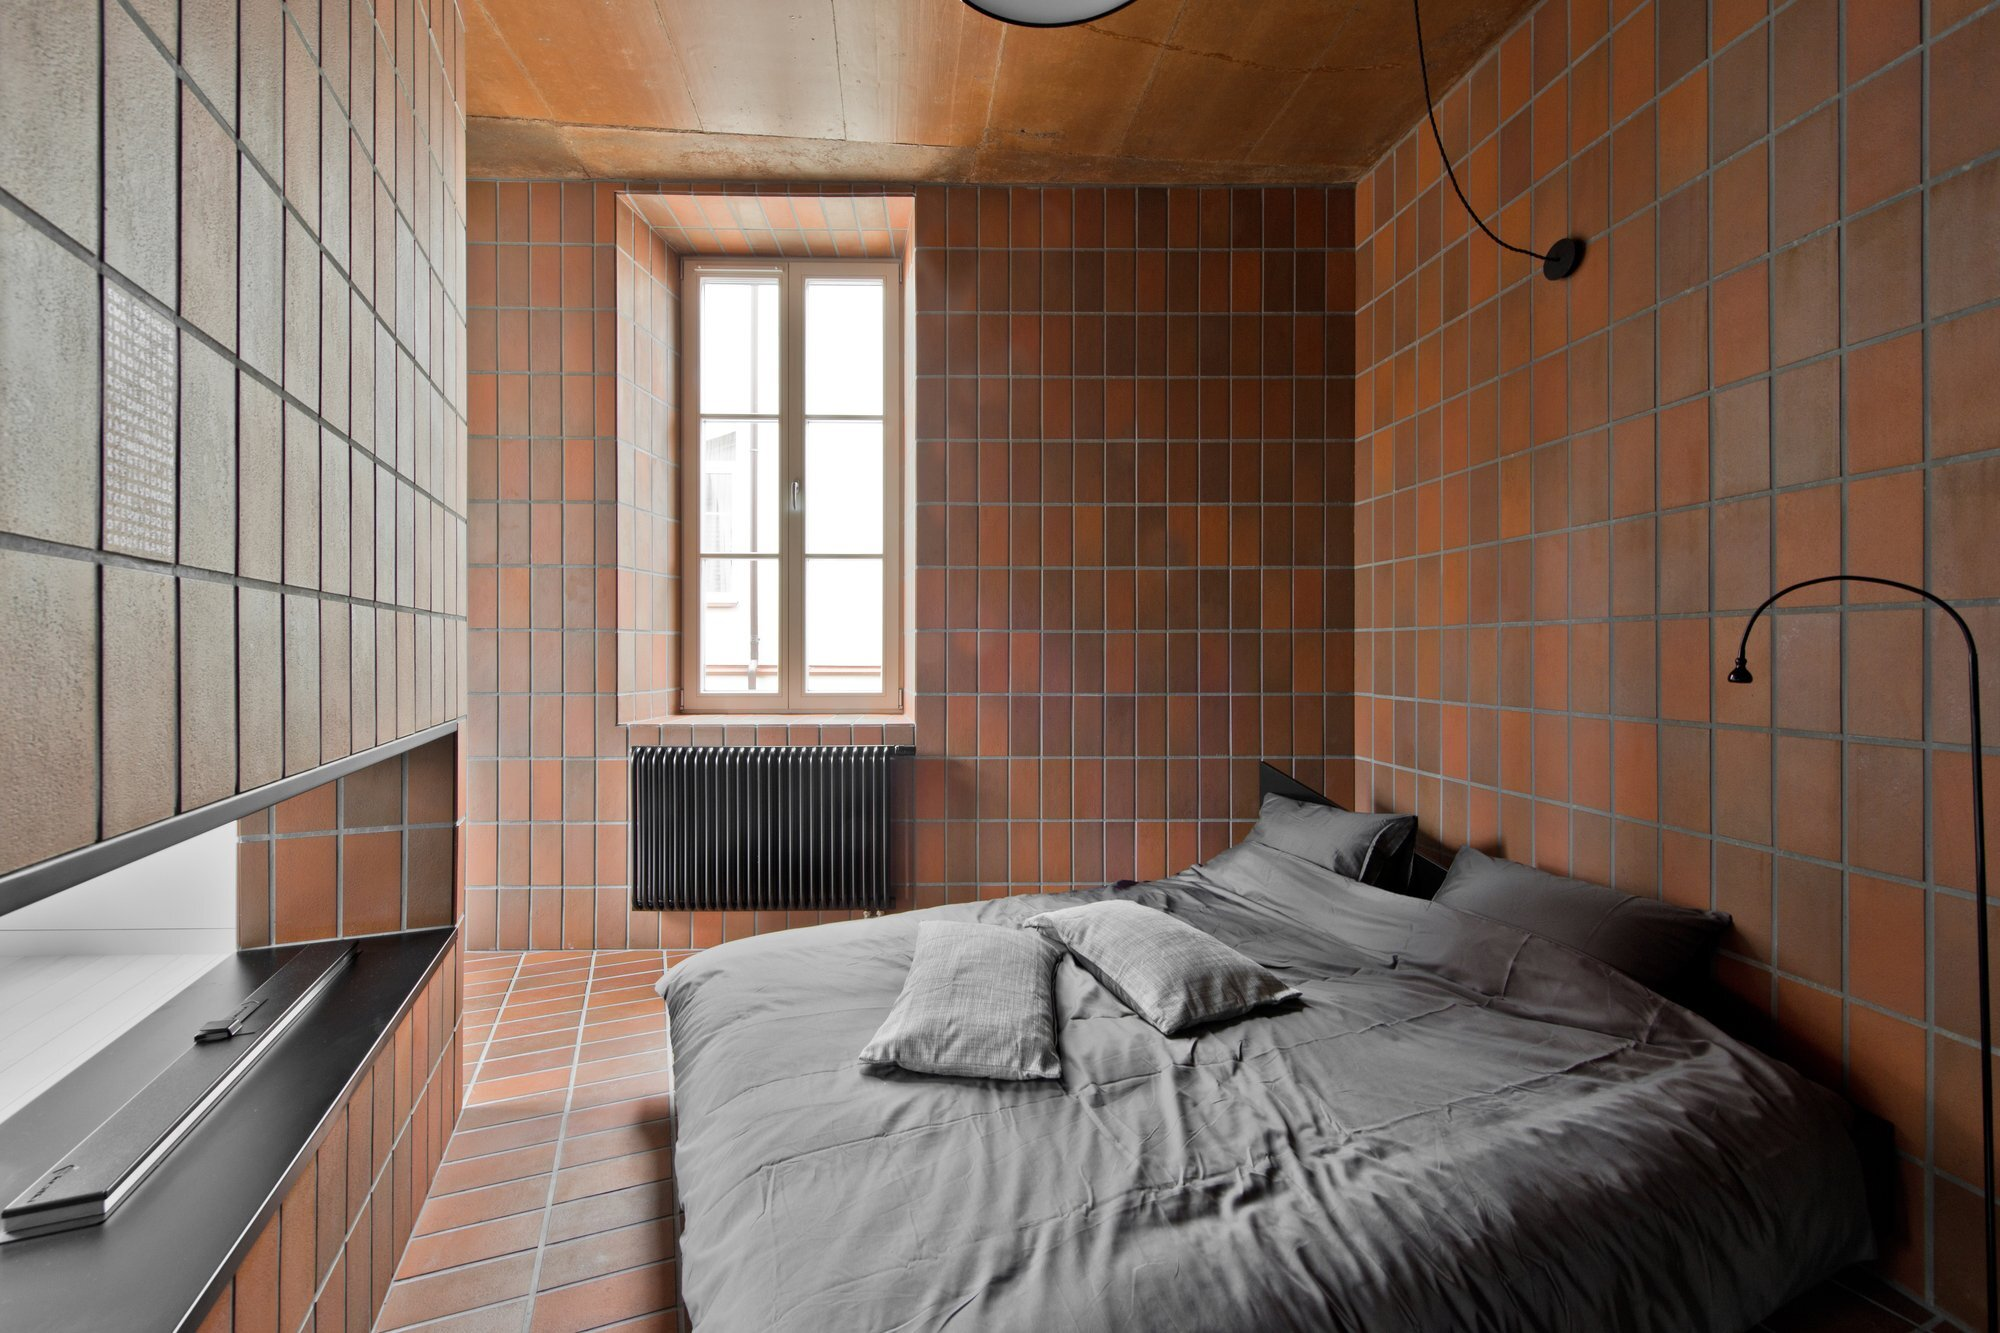 Bazillion - YCL Studio - Lithuania - Bedroom - Humble Homes